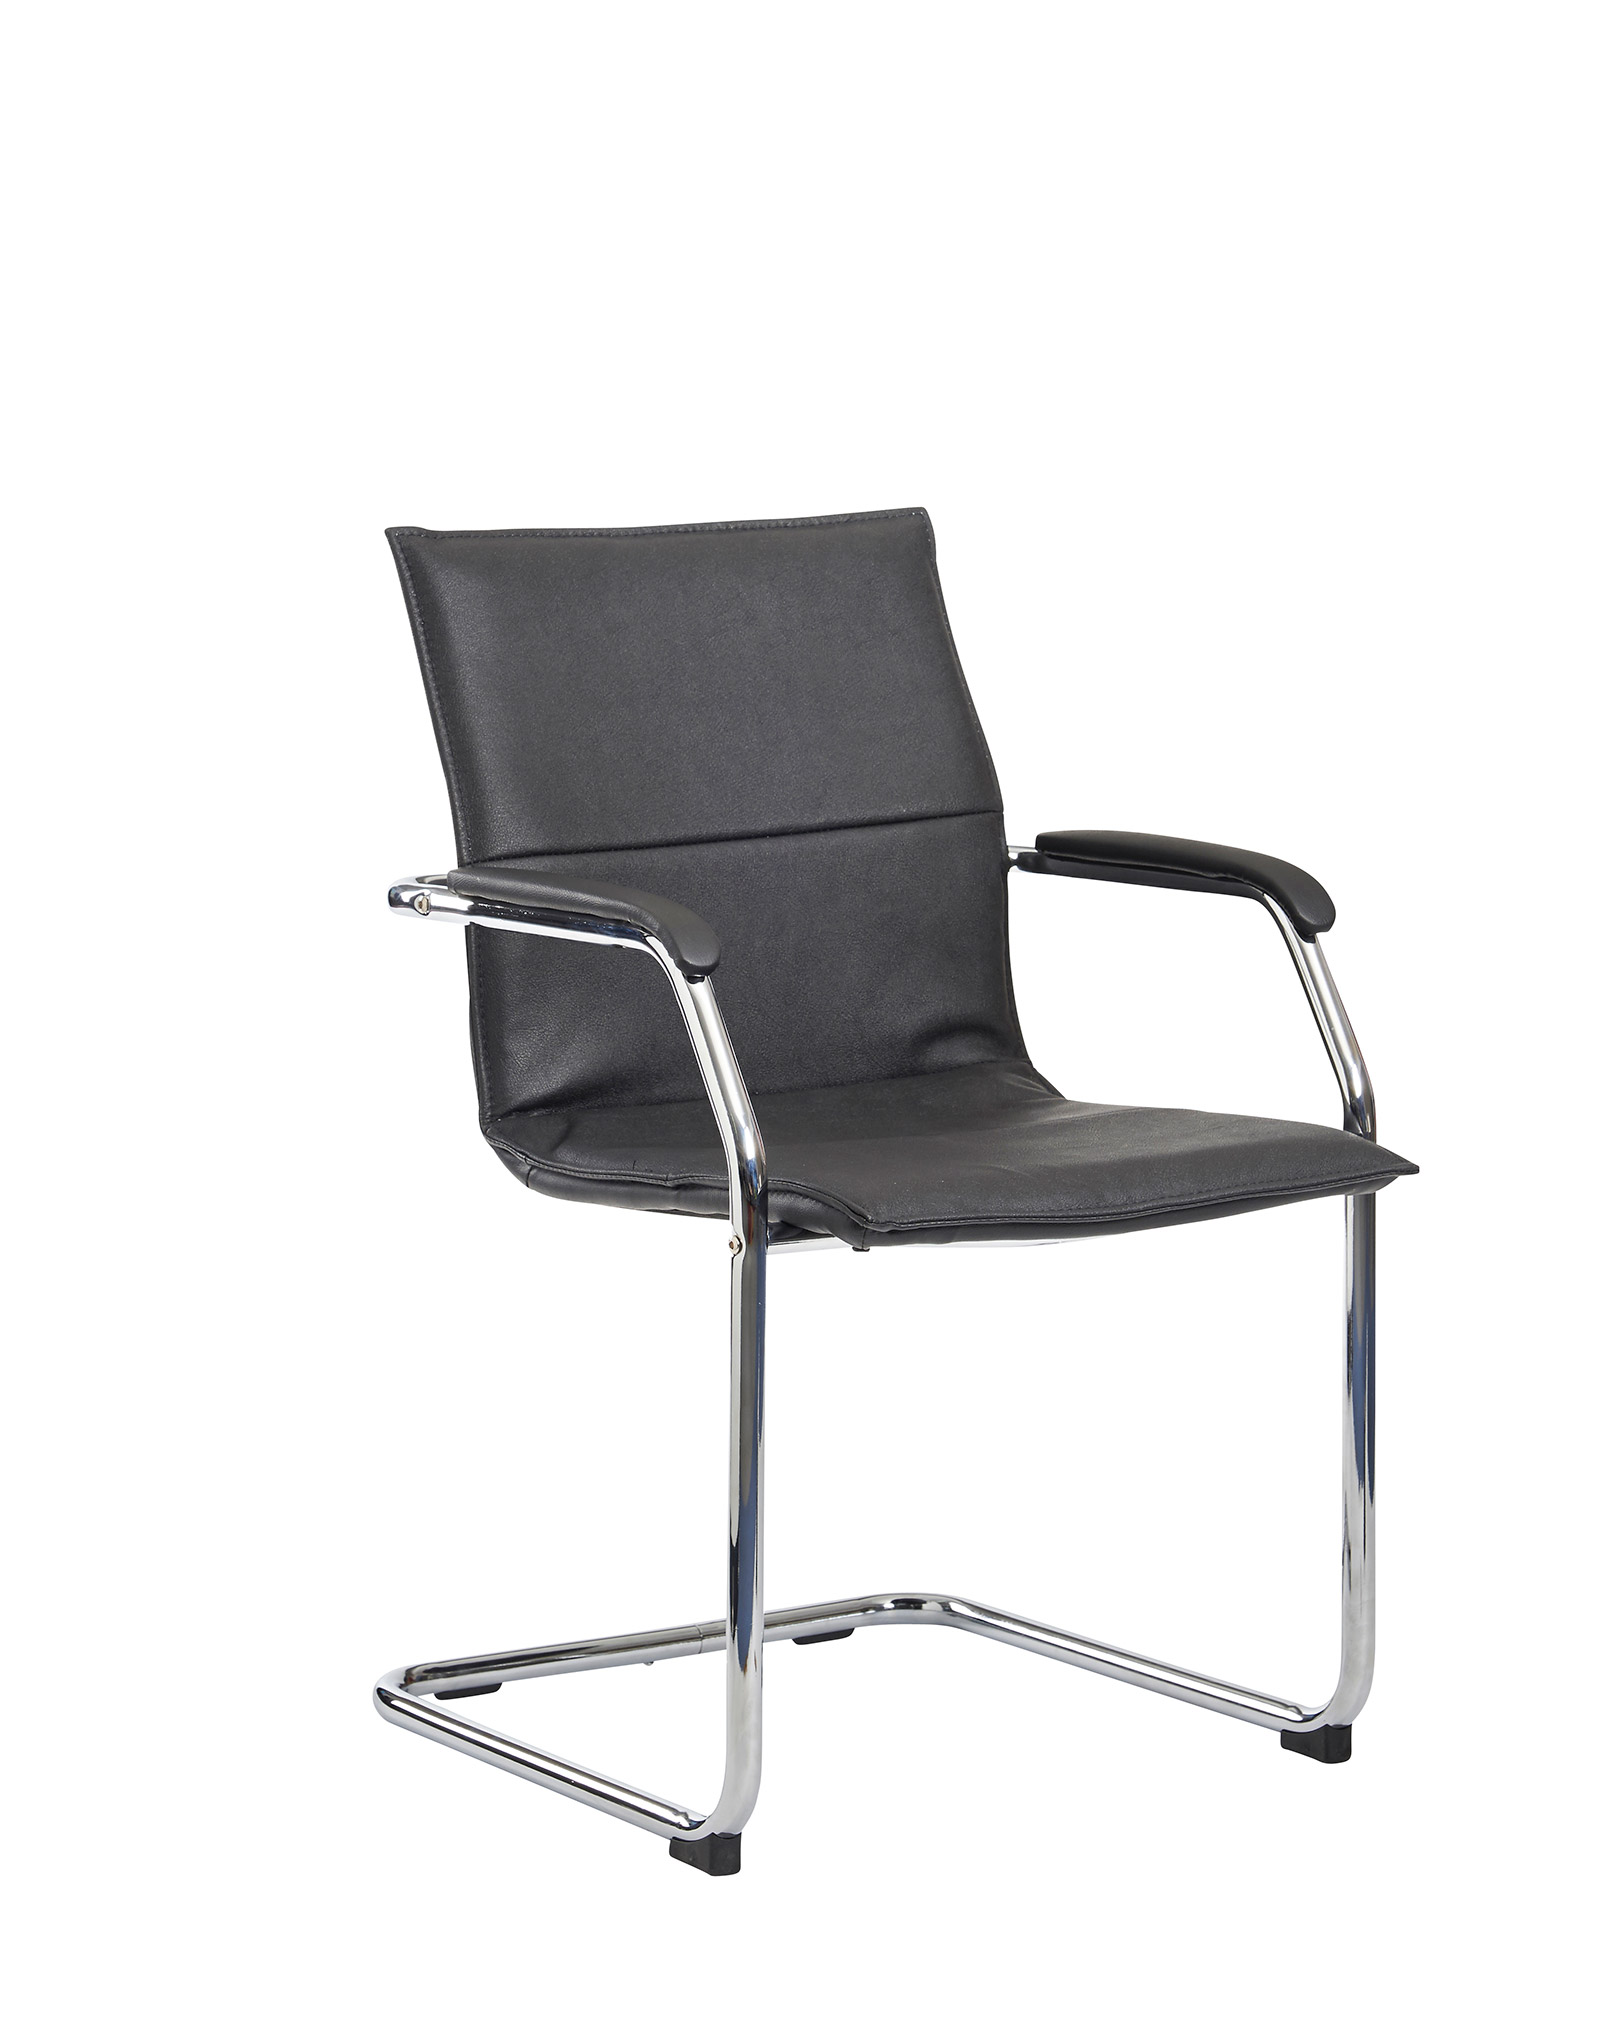 Essen meeting room cantilever chair  black faux leather